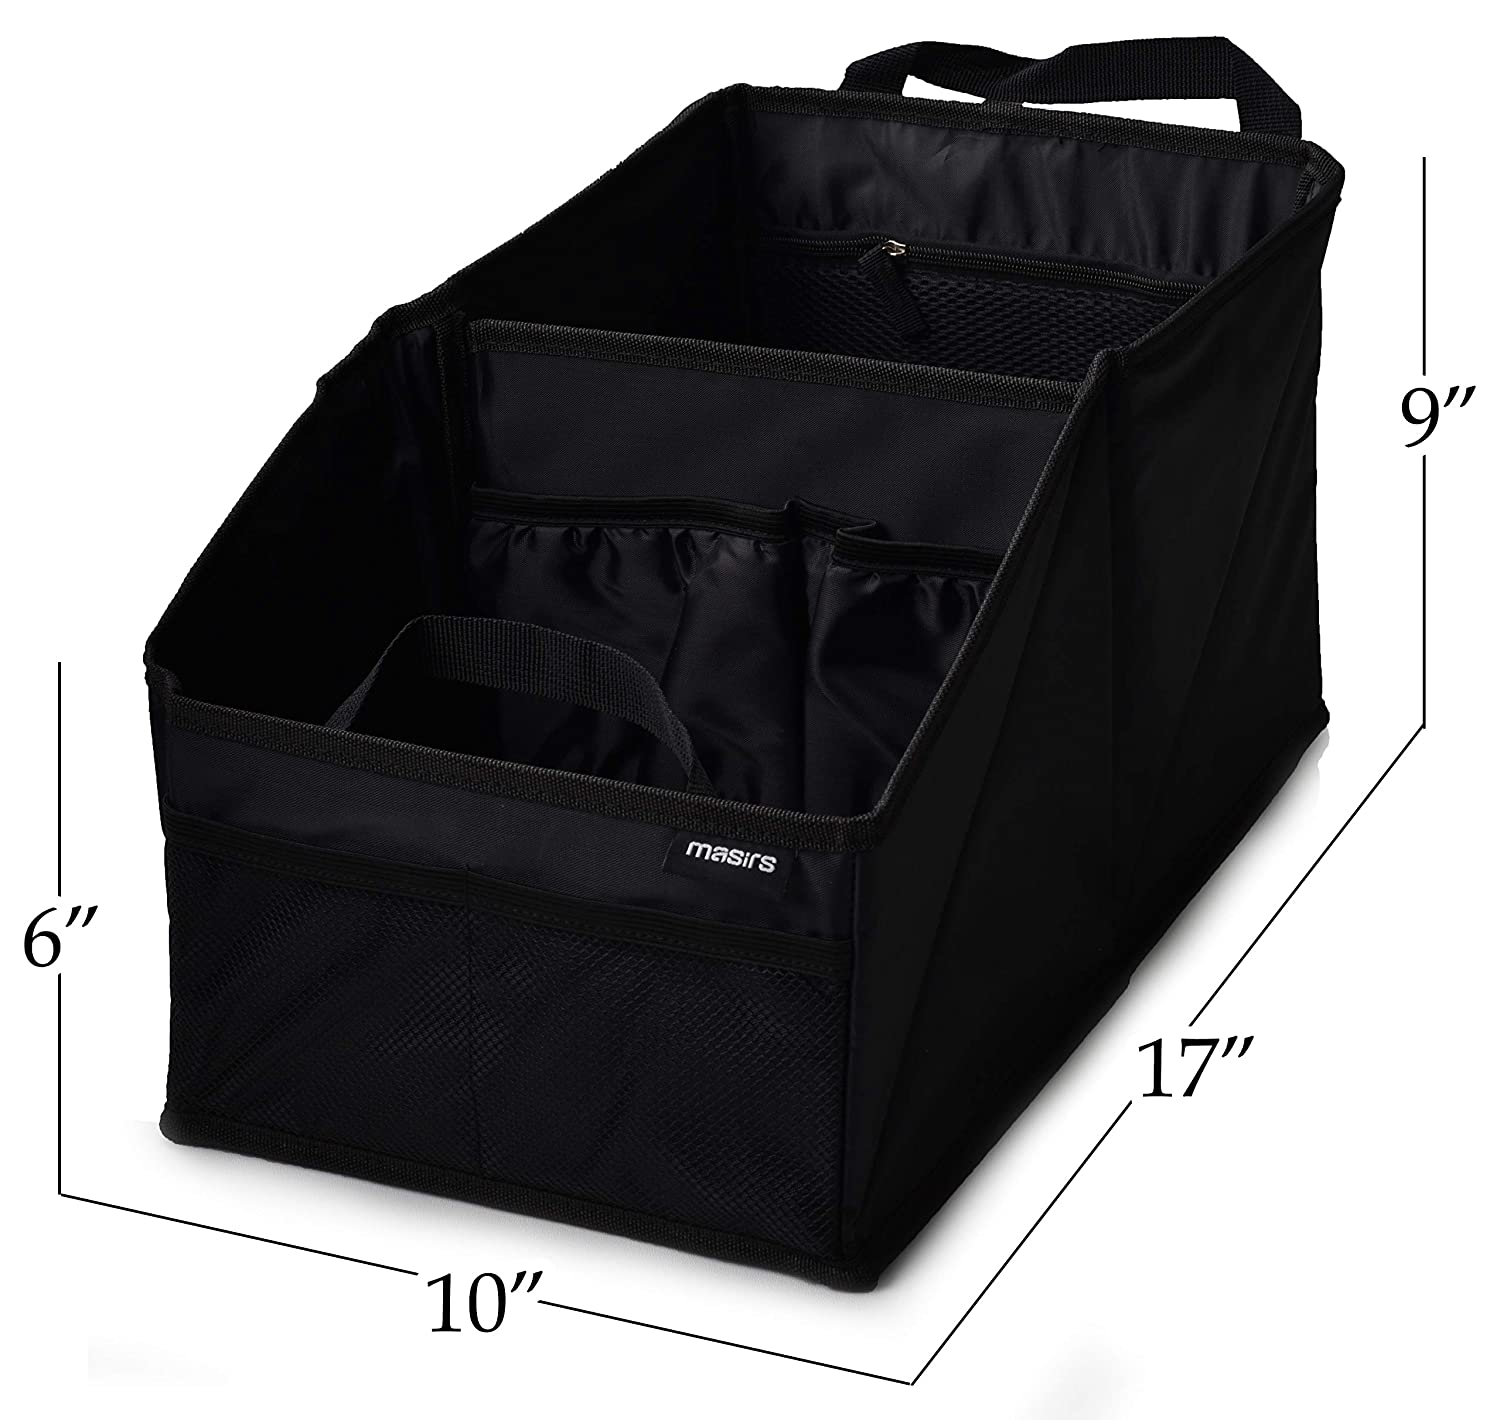 Plenty of Space to Neatly Store and Organize Your Kids Books Games and Snacks While Traveling A Must for Long Road Trips Toys Masirs 5471 Folds Flat for Easy Trunk Storage Back Seat Car Organizer